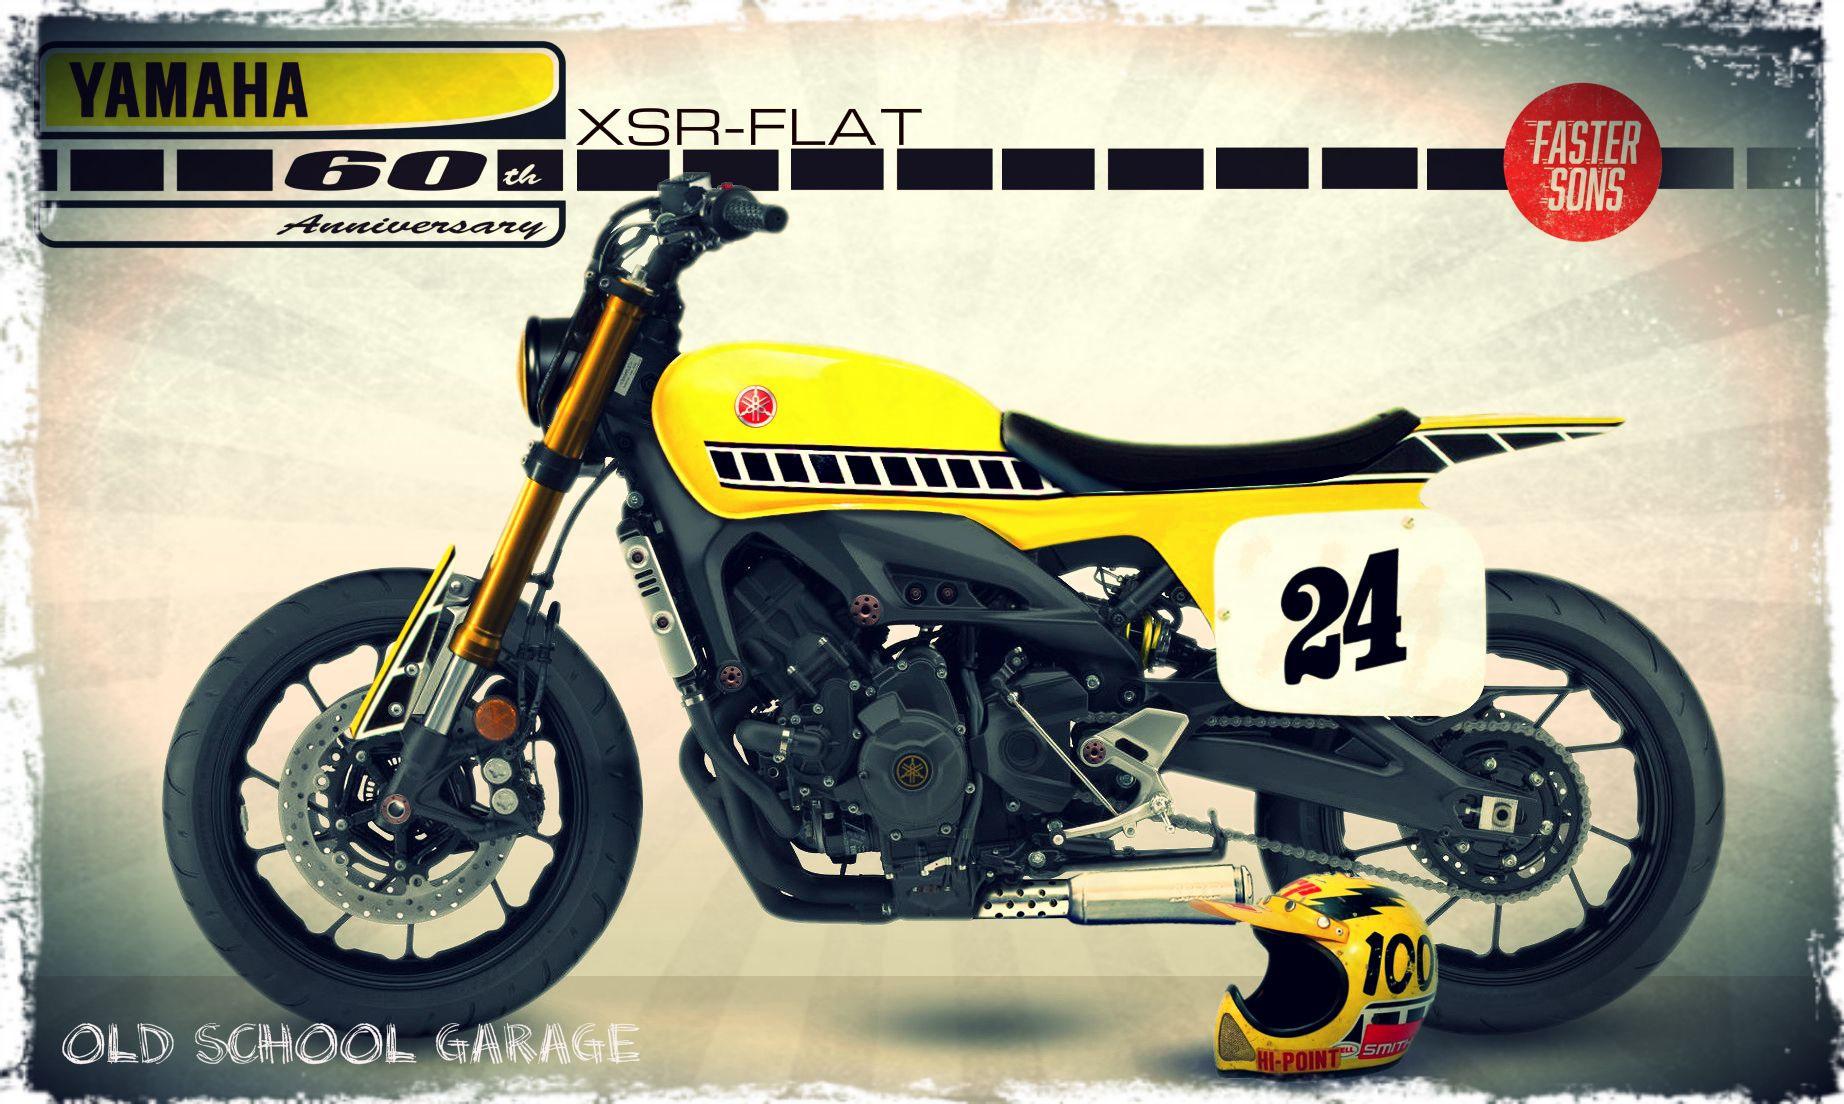 YAMAHA XSR FASTER SONS FLAT TRACK STYLE SPECIAL SCRAMBLER